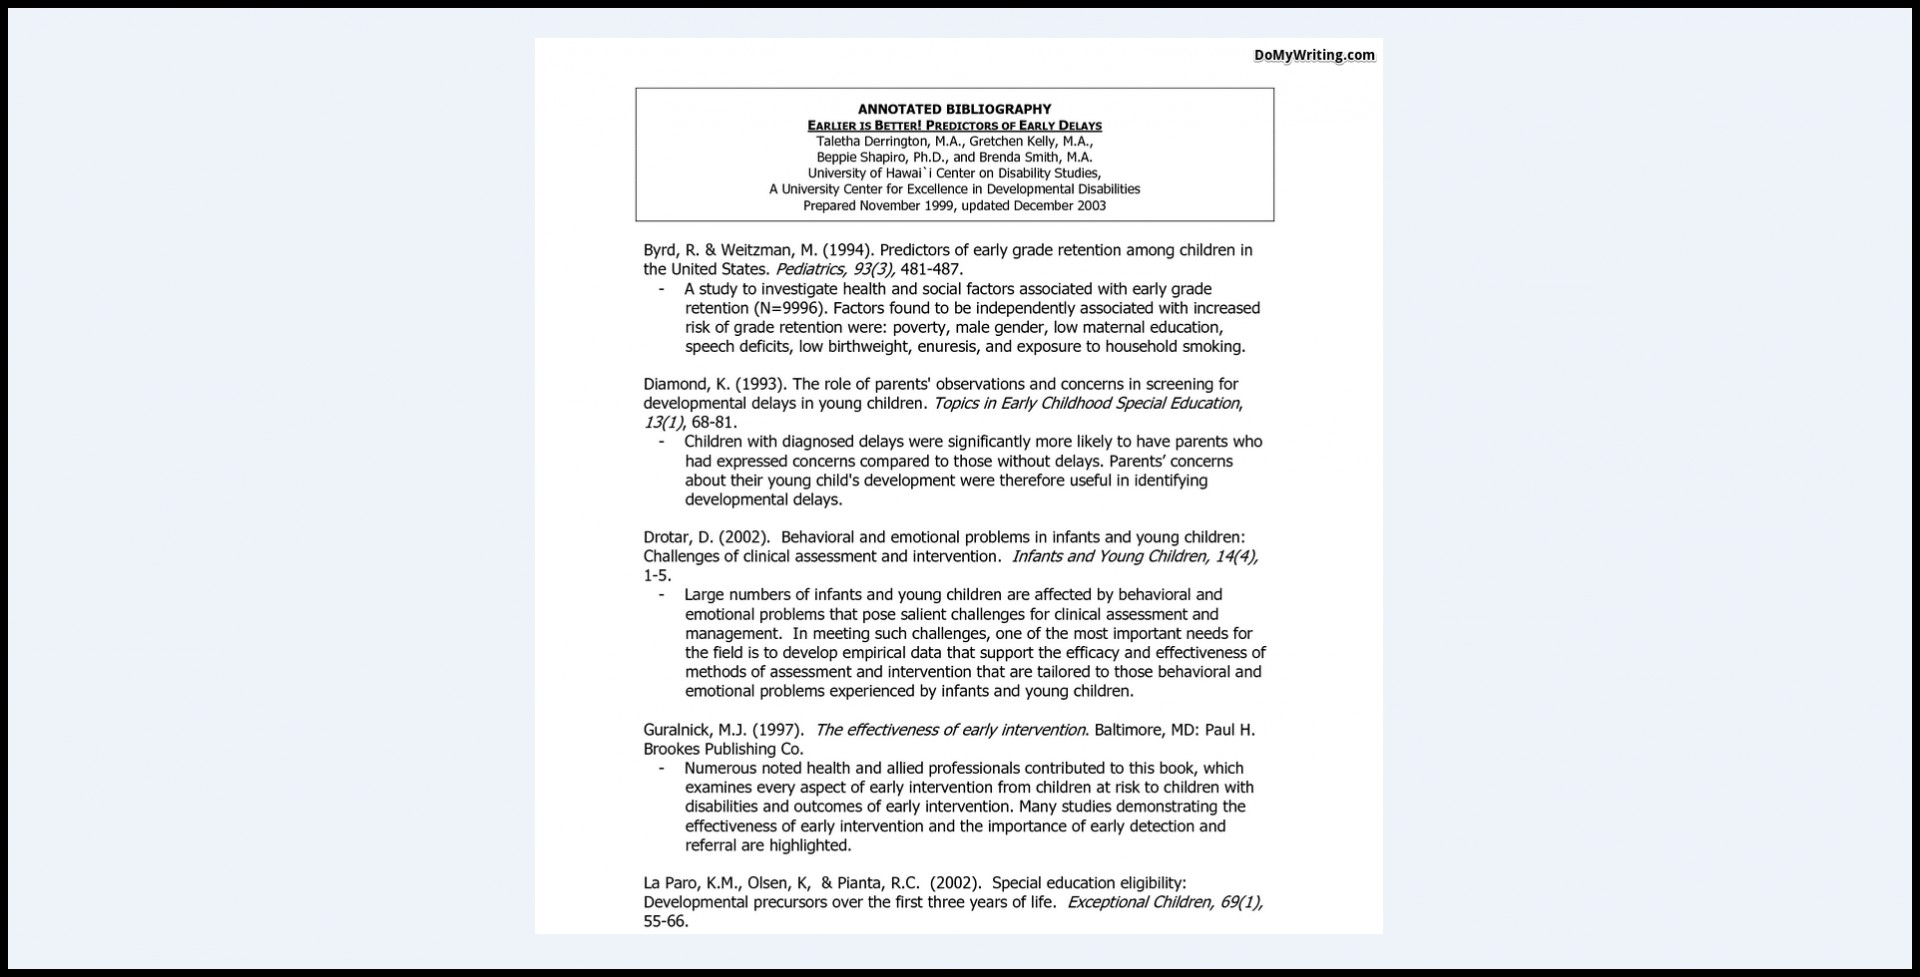 023 Research Paper Bibliography Sample Annotated Dreaded Format For Citing A 1920